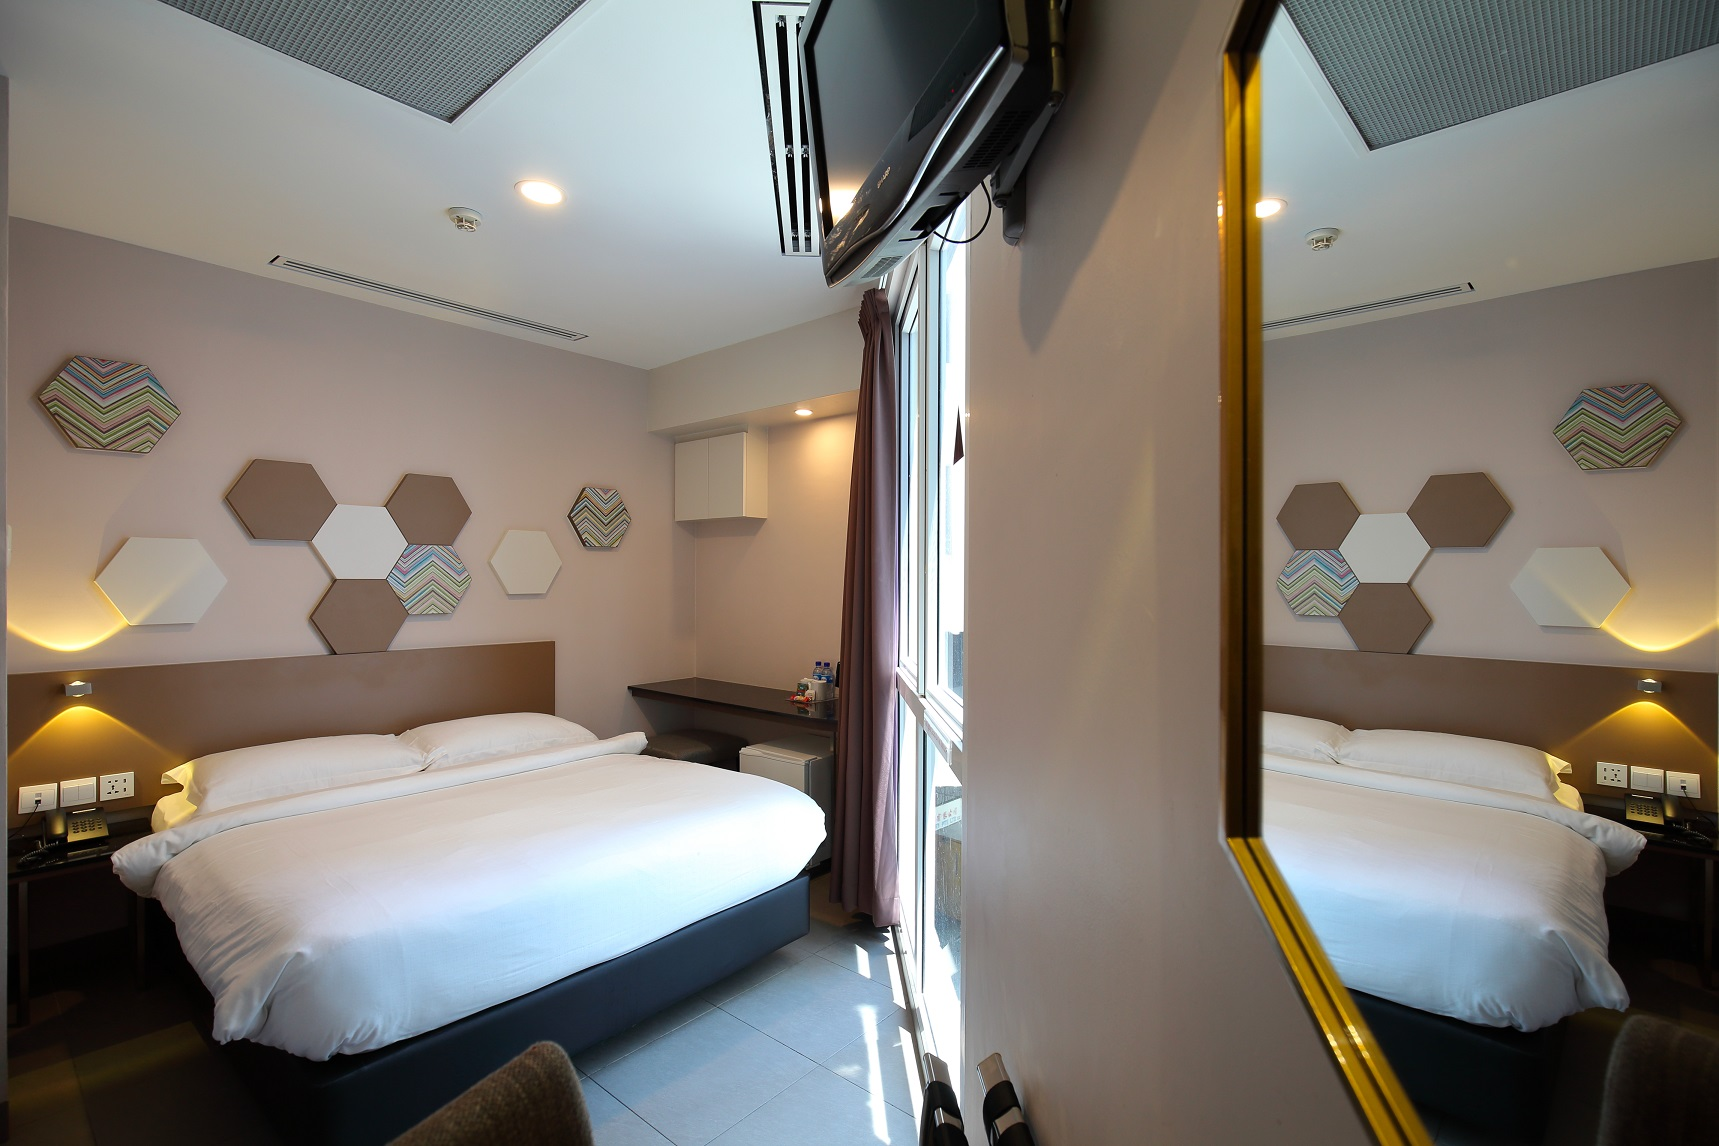 One of the refurbished rooms at the 74-unit ibis budget Imperial located on Penhas Road (Photo: Samuel Isaac Chua/EdgeProp Singapore) - EDGEPROP SINGAPORE